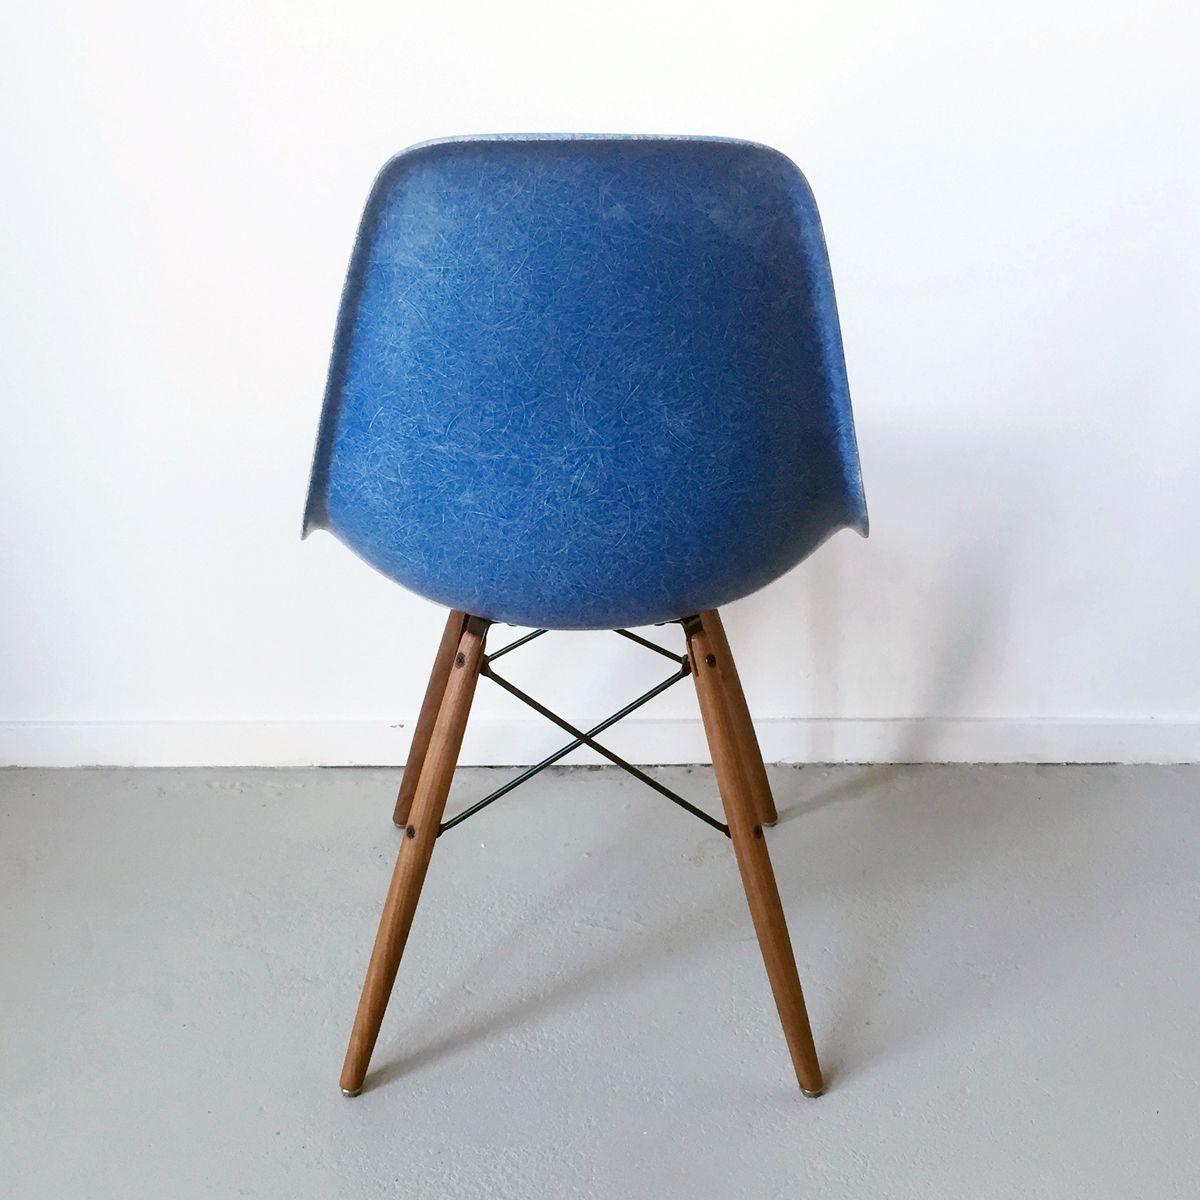 dsw chair in blue by charles and ray eames for herman. Black Bedroom Furniture Sets. Home Design Ideas